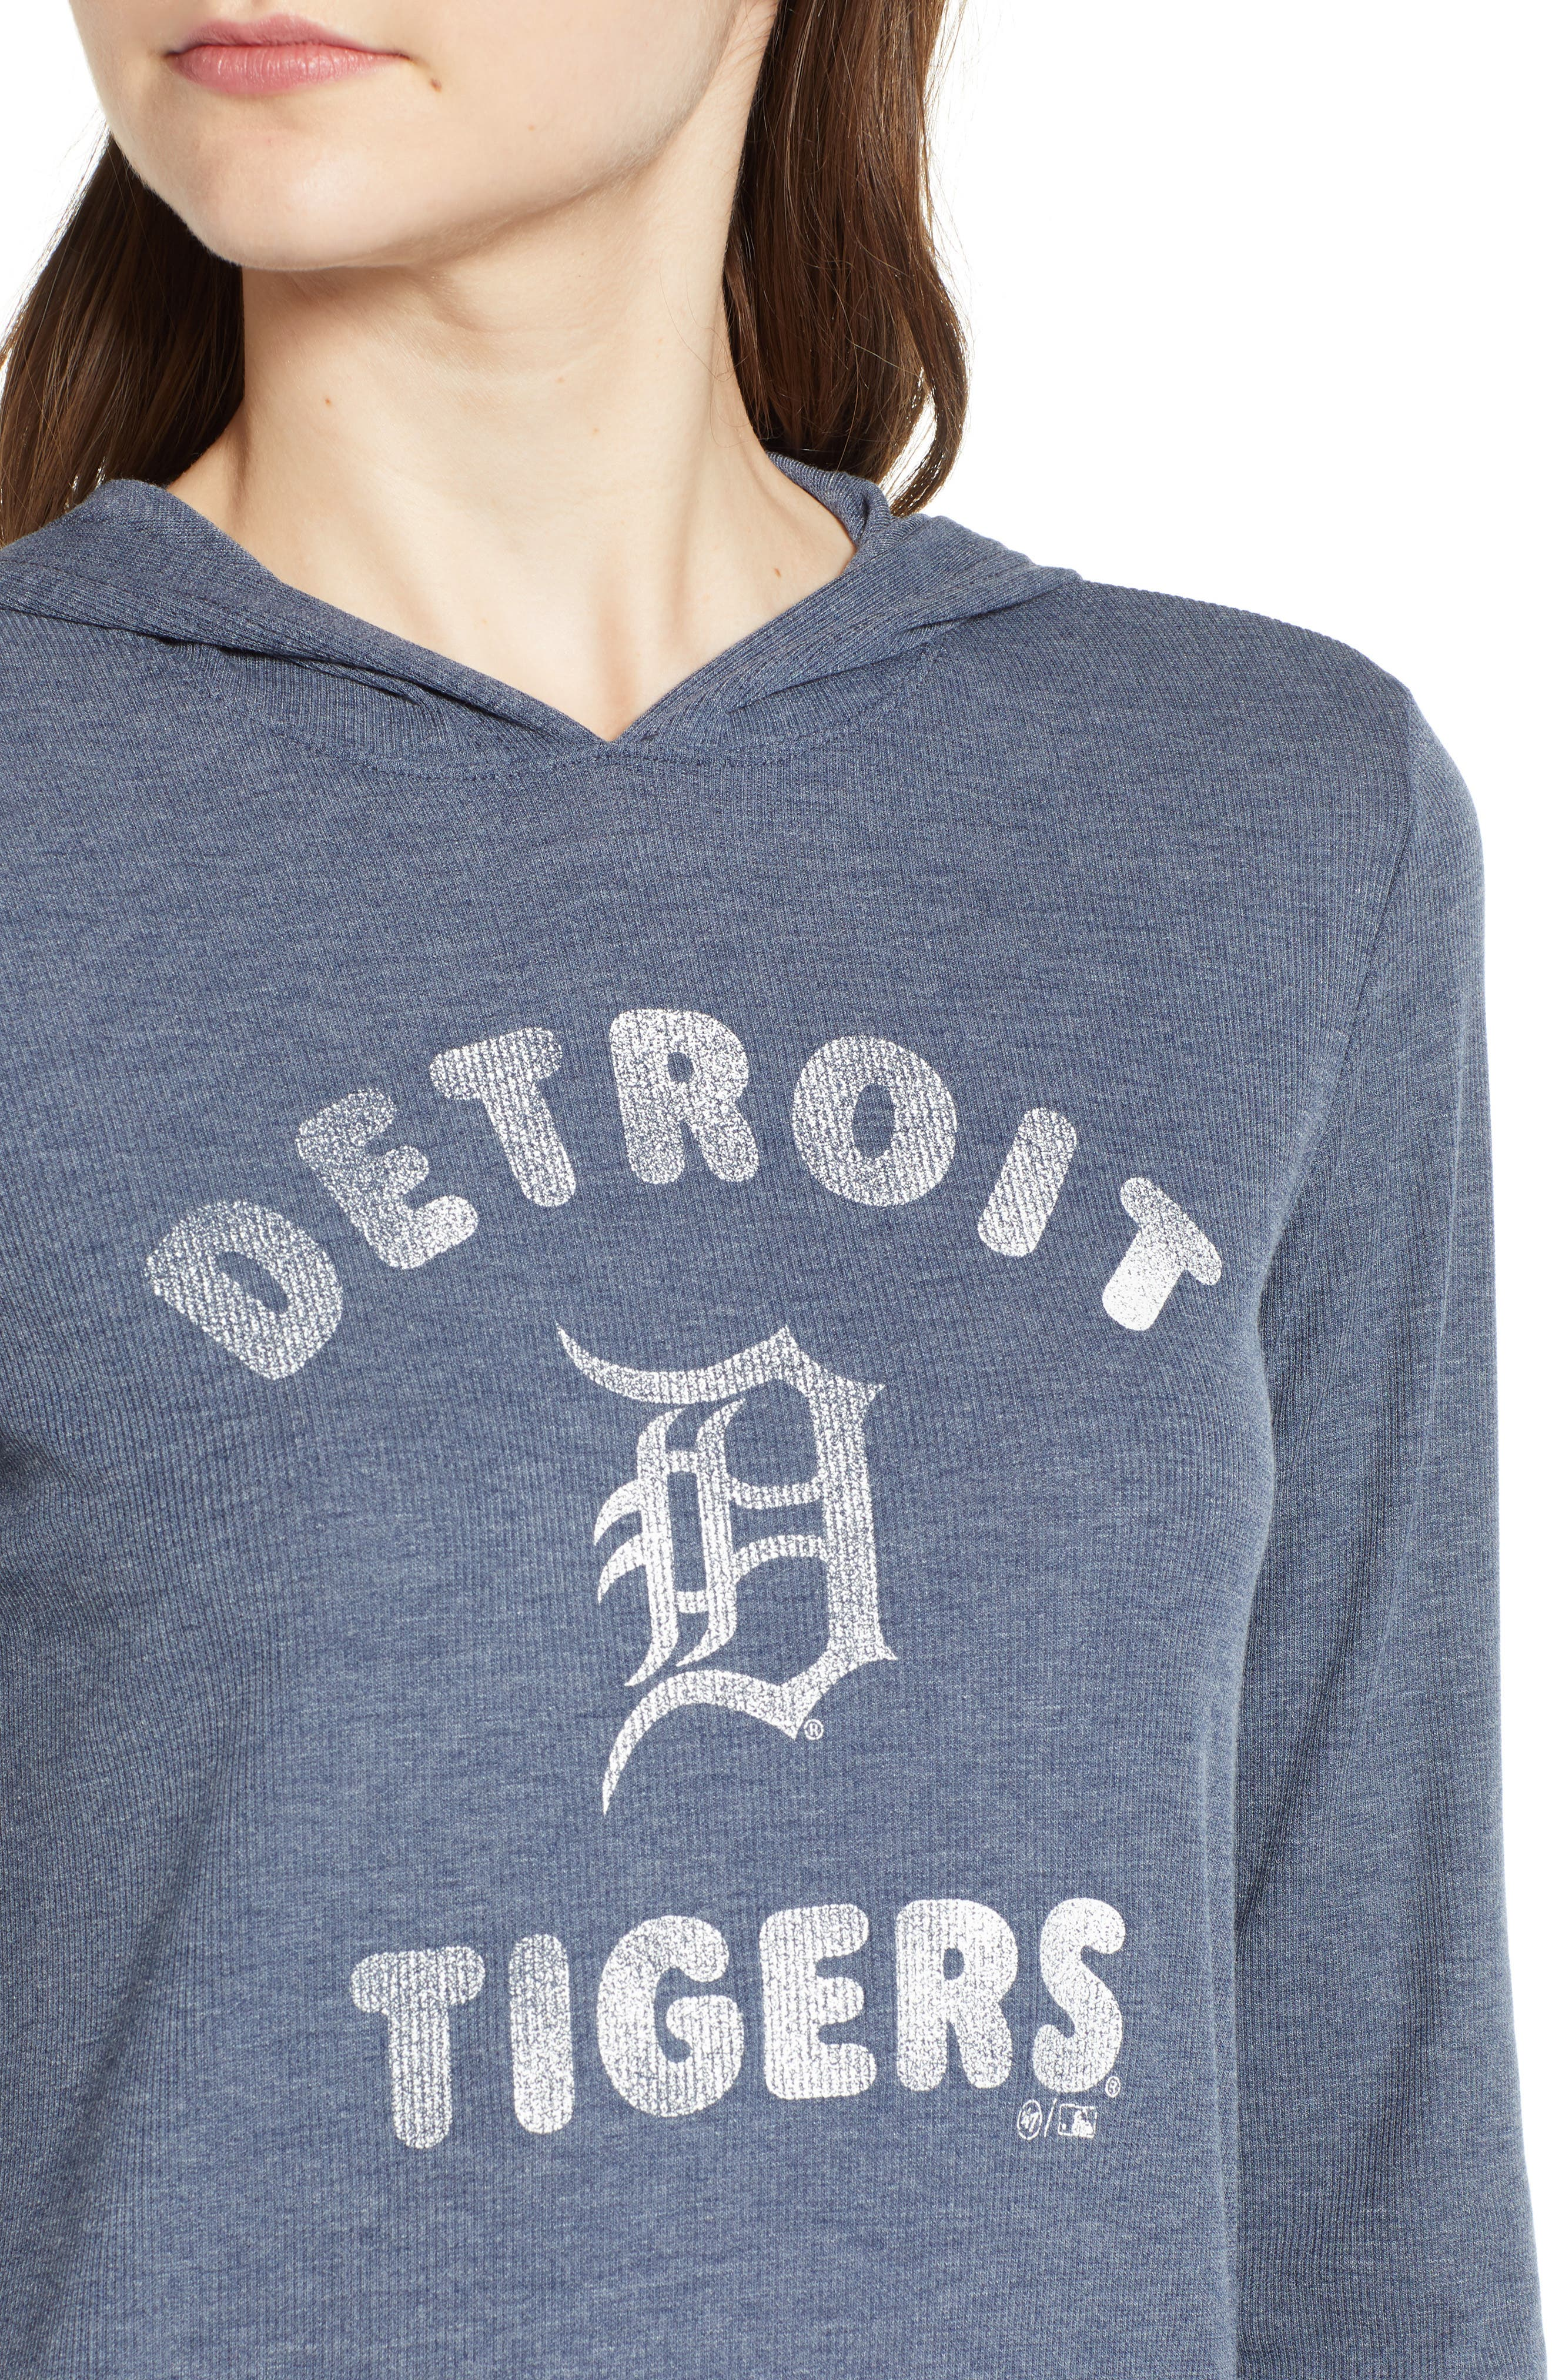 Campbell Detroit Tigers Rib Knit Hooded Top,                             Alternate thumbnail 4, color,                             Midnight